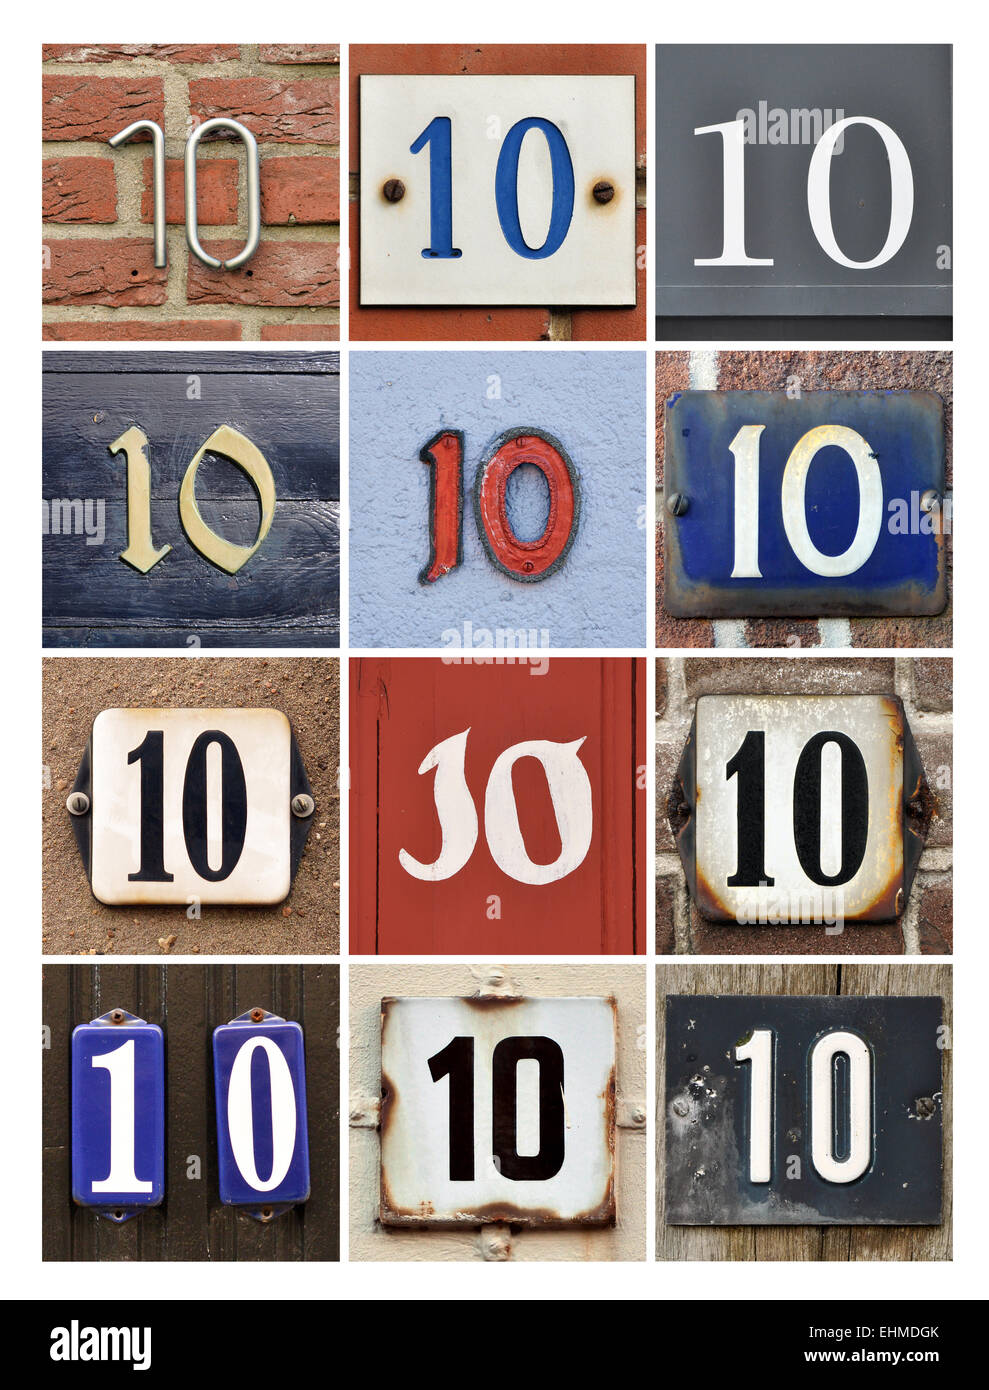 Number 10 - Collage of Numbers Ten Stock Photo - Alamy